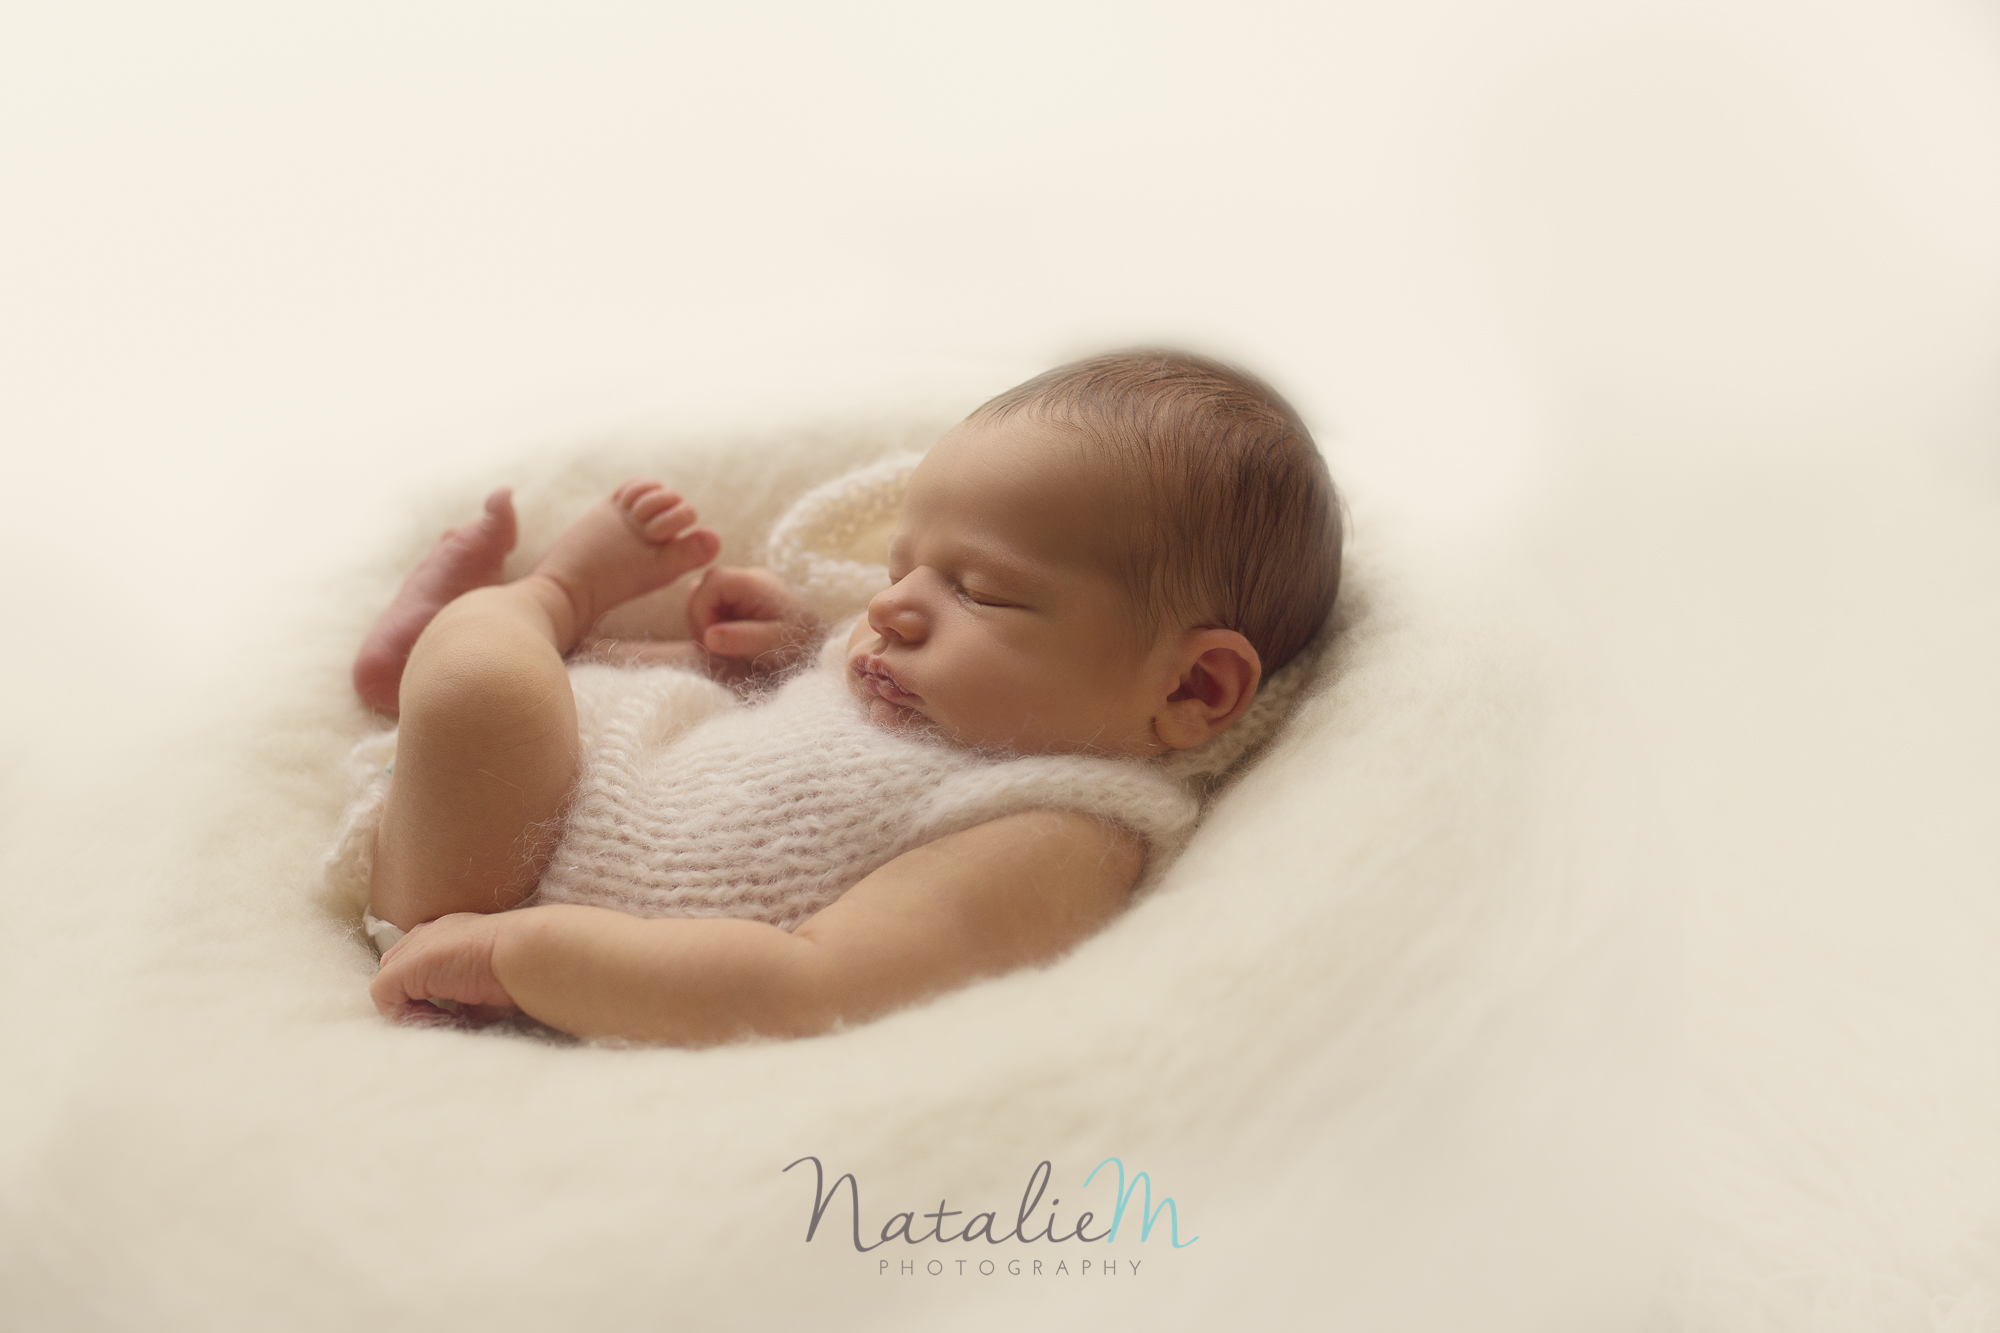 Standard Session - $400 - Includes session in studio with full use of props and wraps. Family and sibling photos included.10 edited images as high resolution digital files.